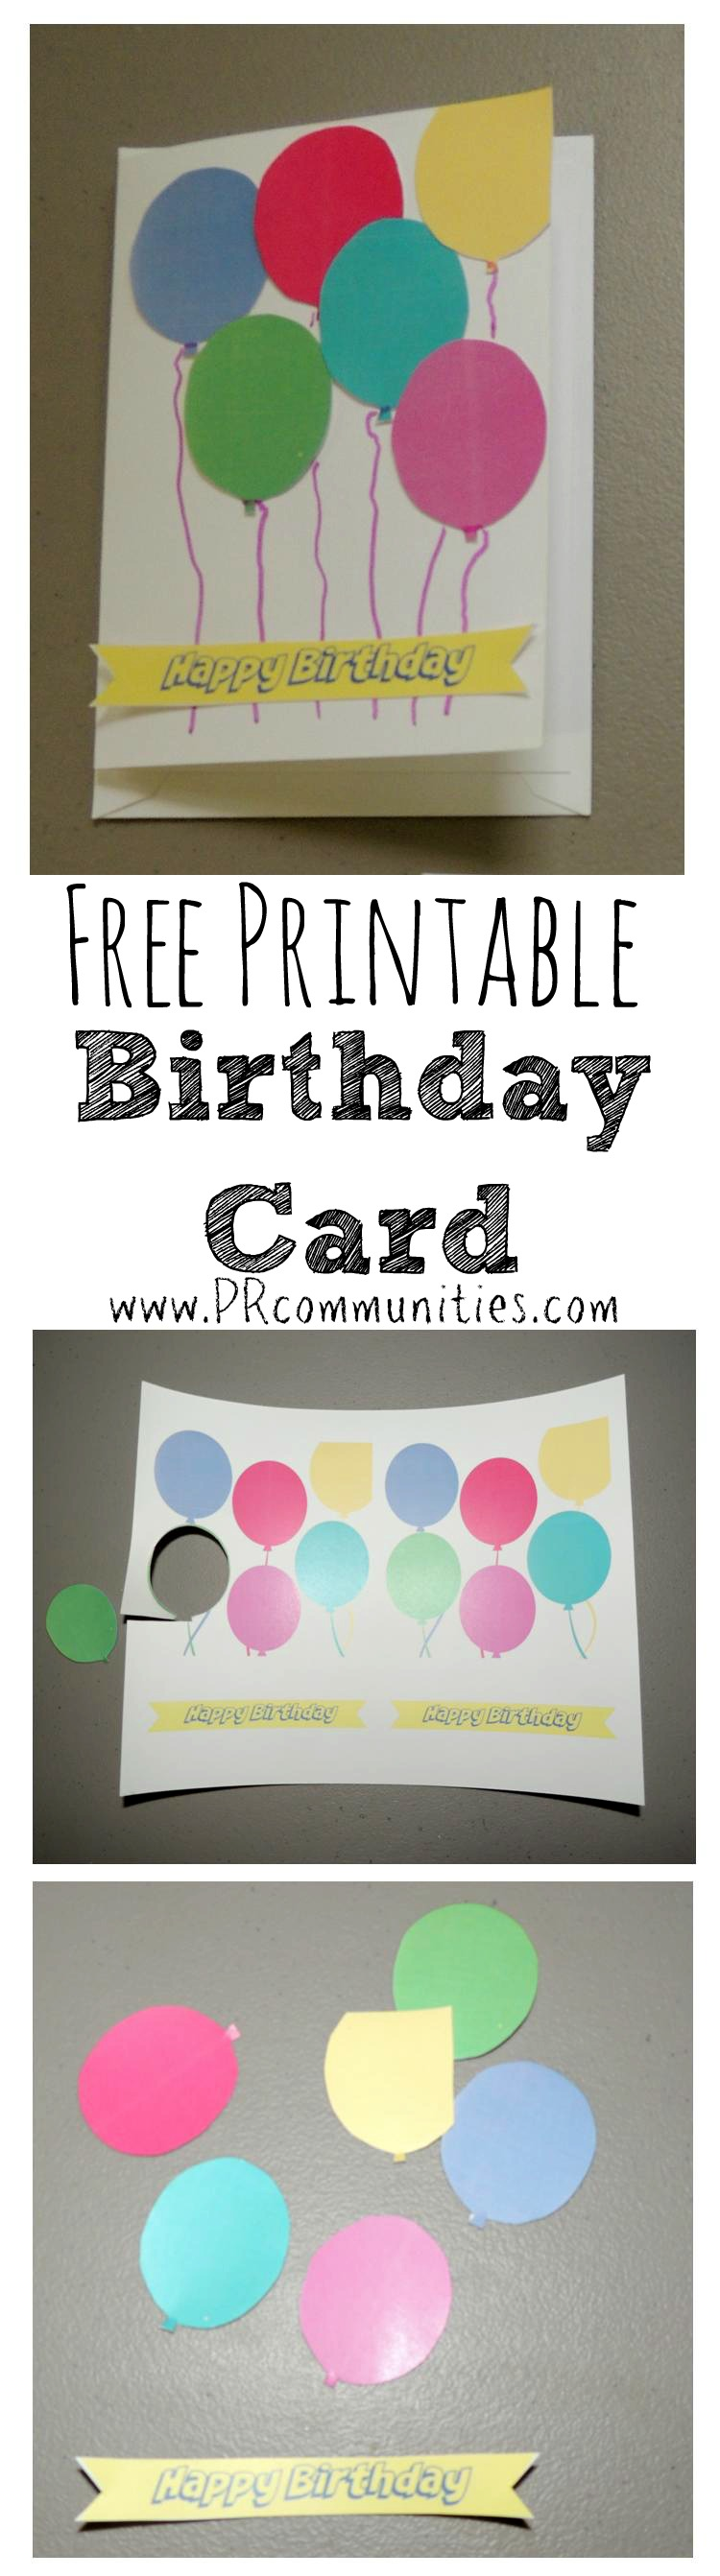 Free Printable DIY Birthday Card